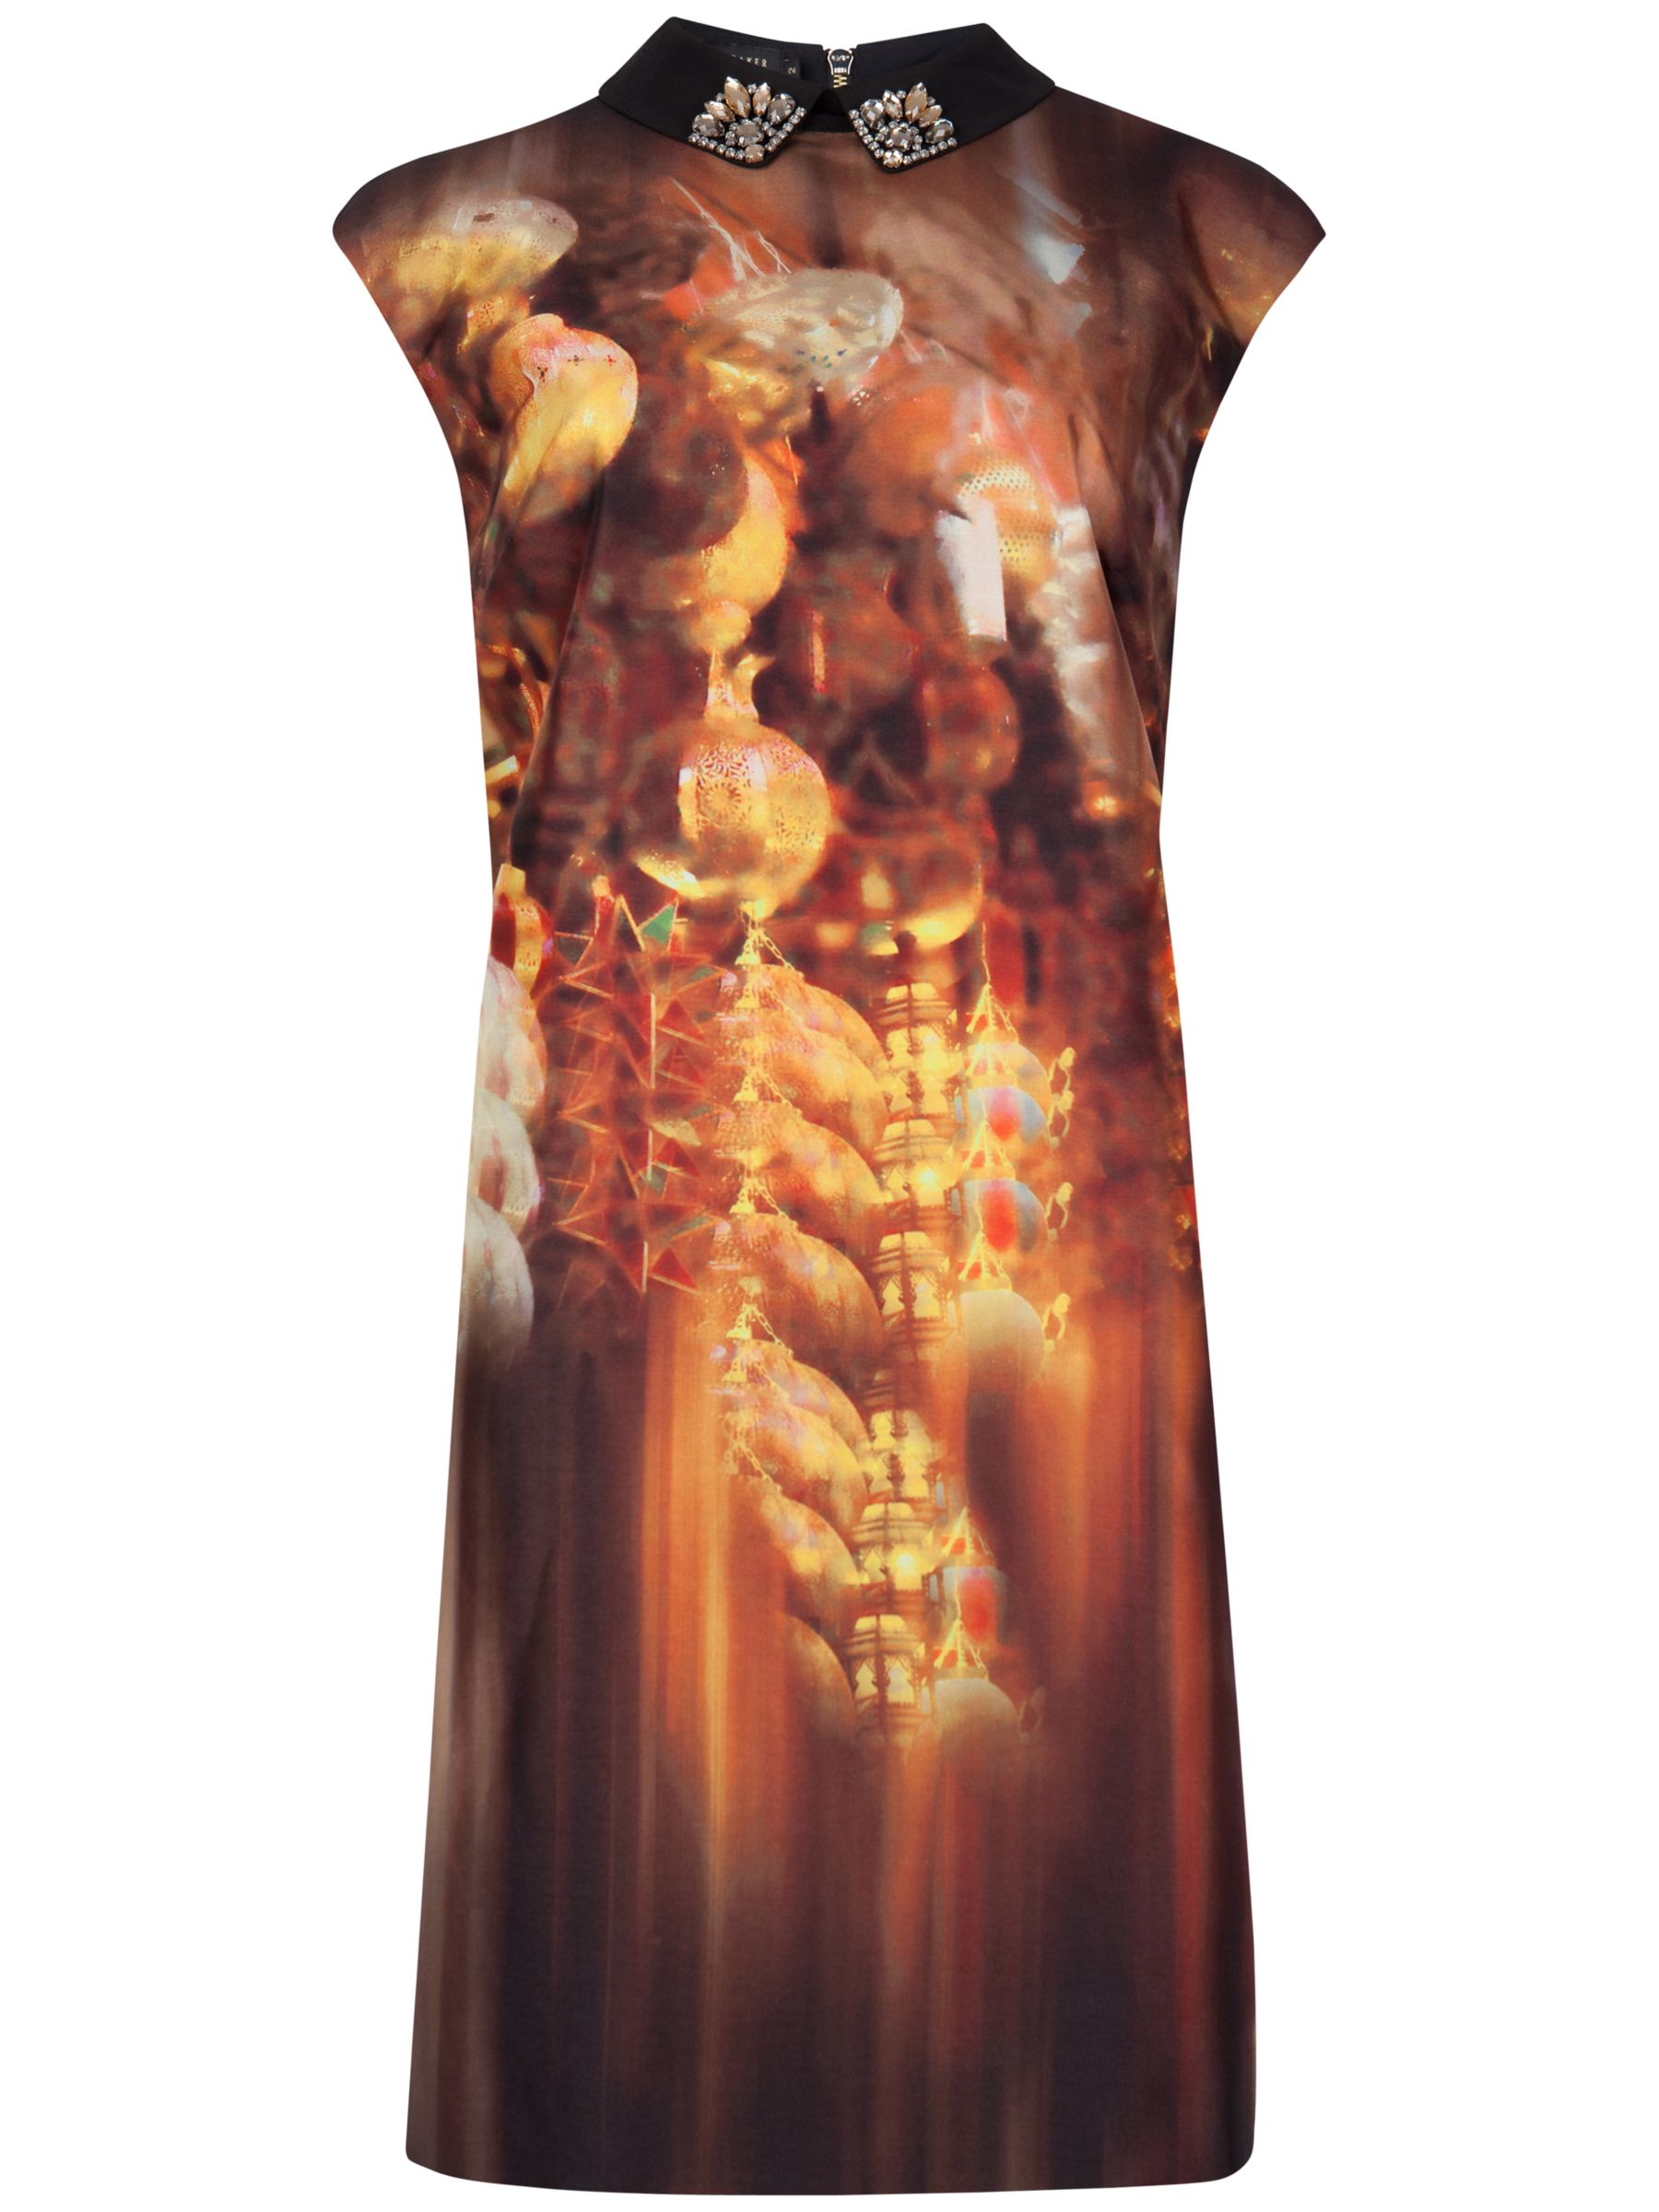 ted baker glittering trinkets tunic bronze, ted, baker, glittering, trinkets, tunic, bronze, ted baker, clearance, womenswear offers, womens dresses offers, women, womens dresses, special offers, womens tops offers, fashion magazine, womenswear, men, brands l-z, 1735441